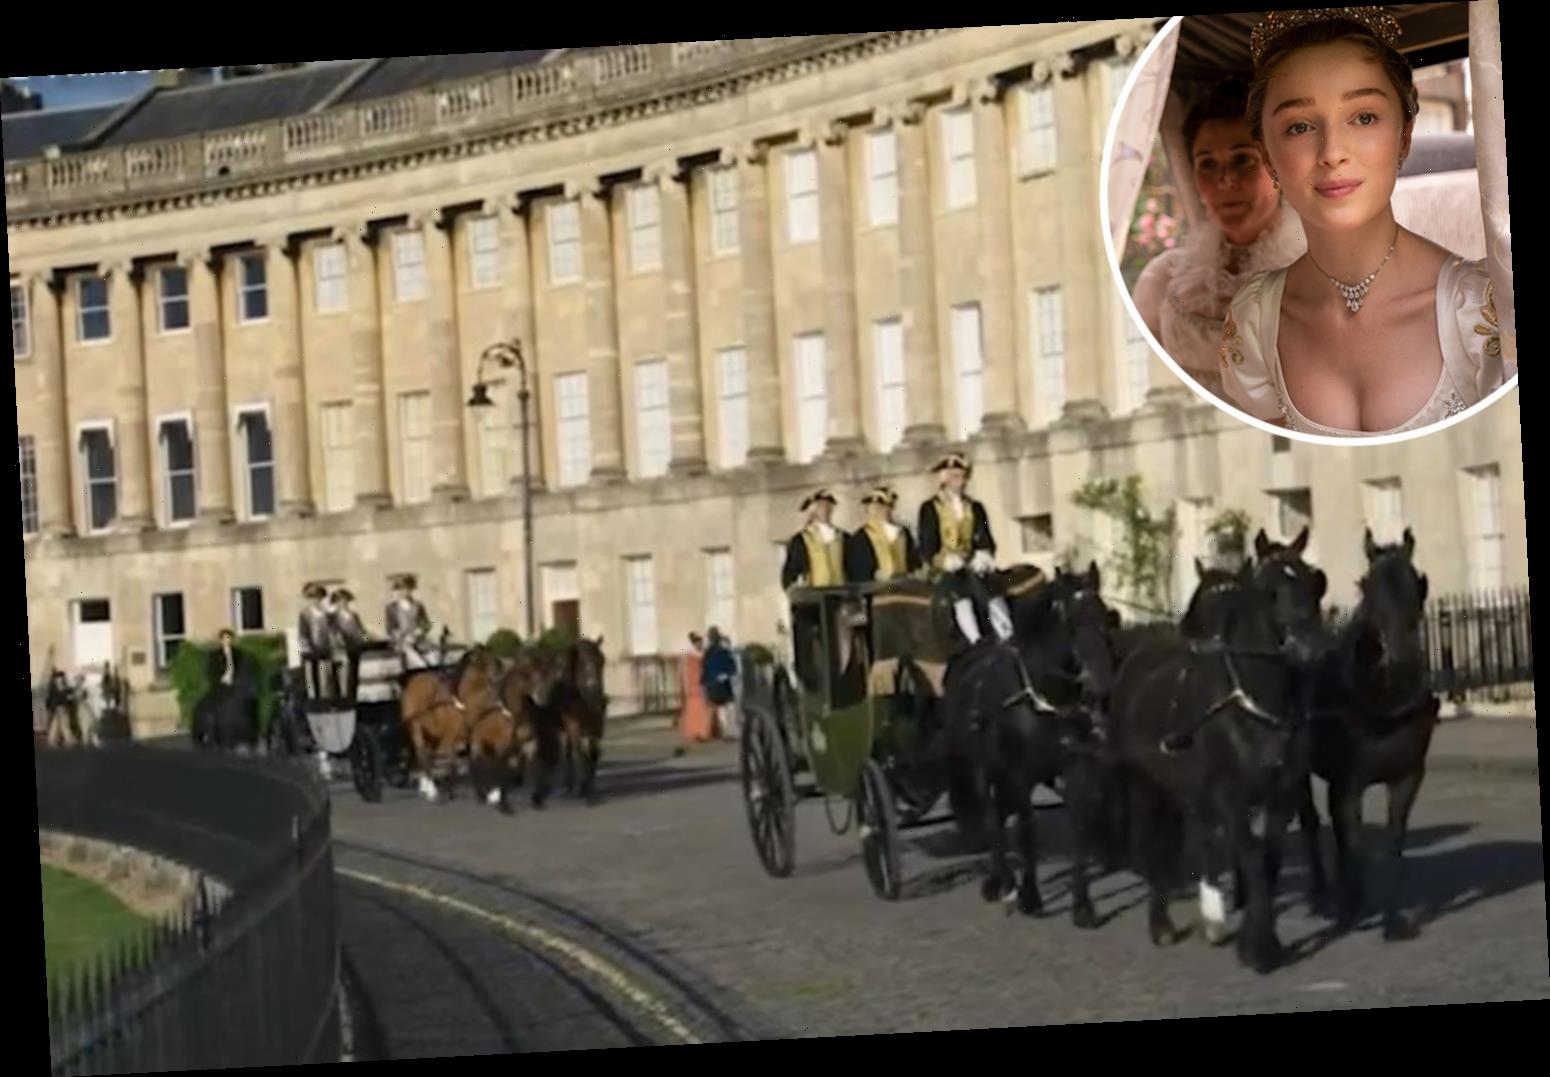 Bridgerton fans spot major historical blunder in opening scene with yellow lines for CARS on the road